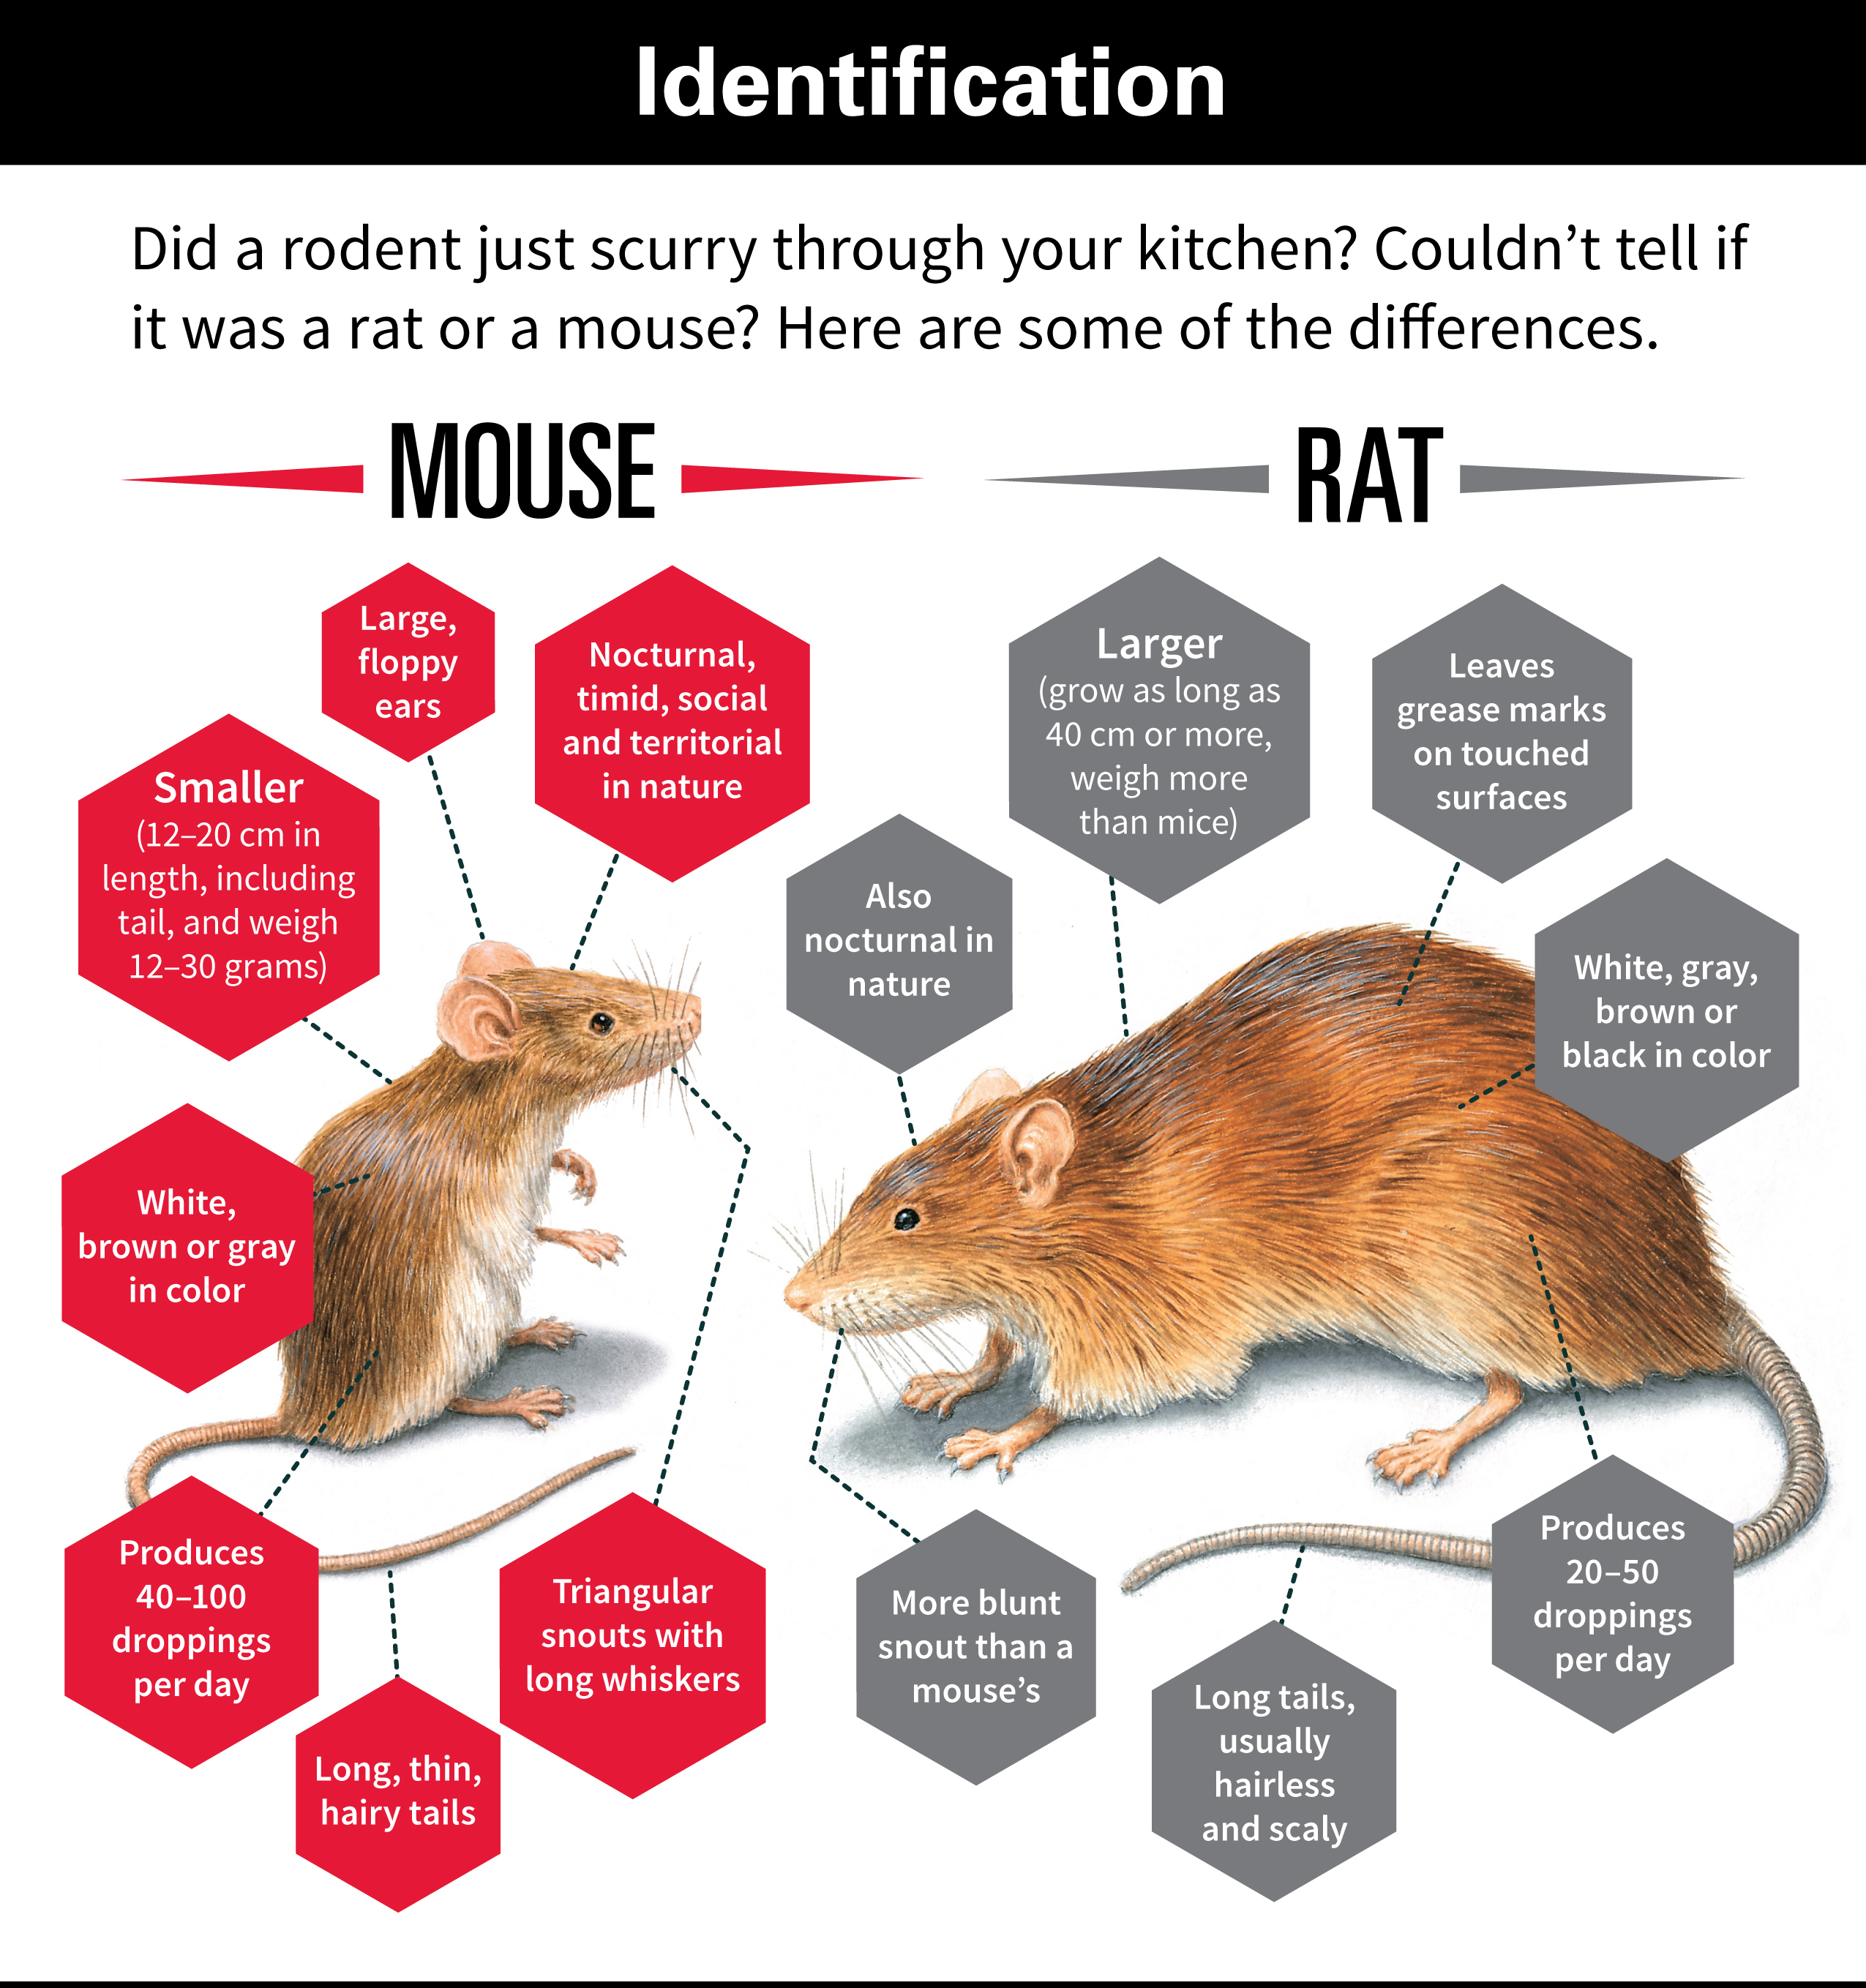 Differences Between Rats And Mice